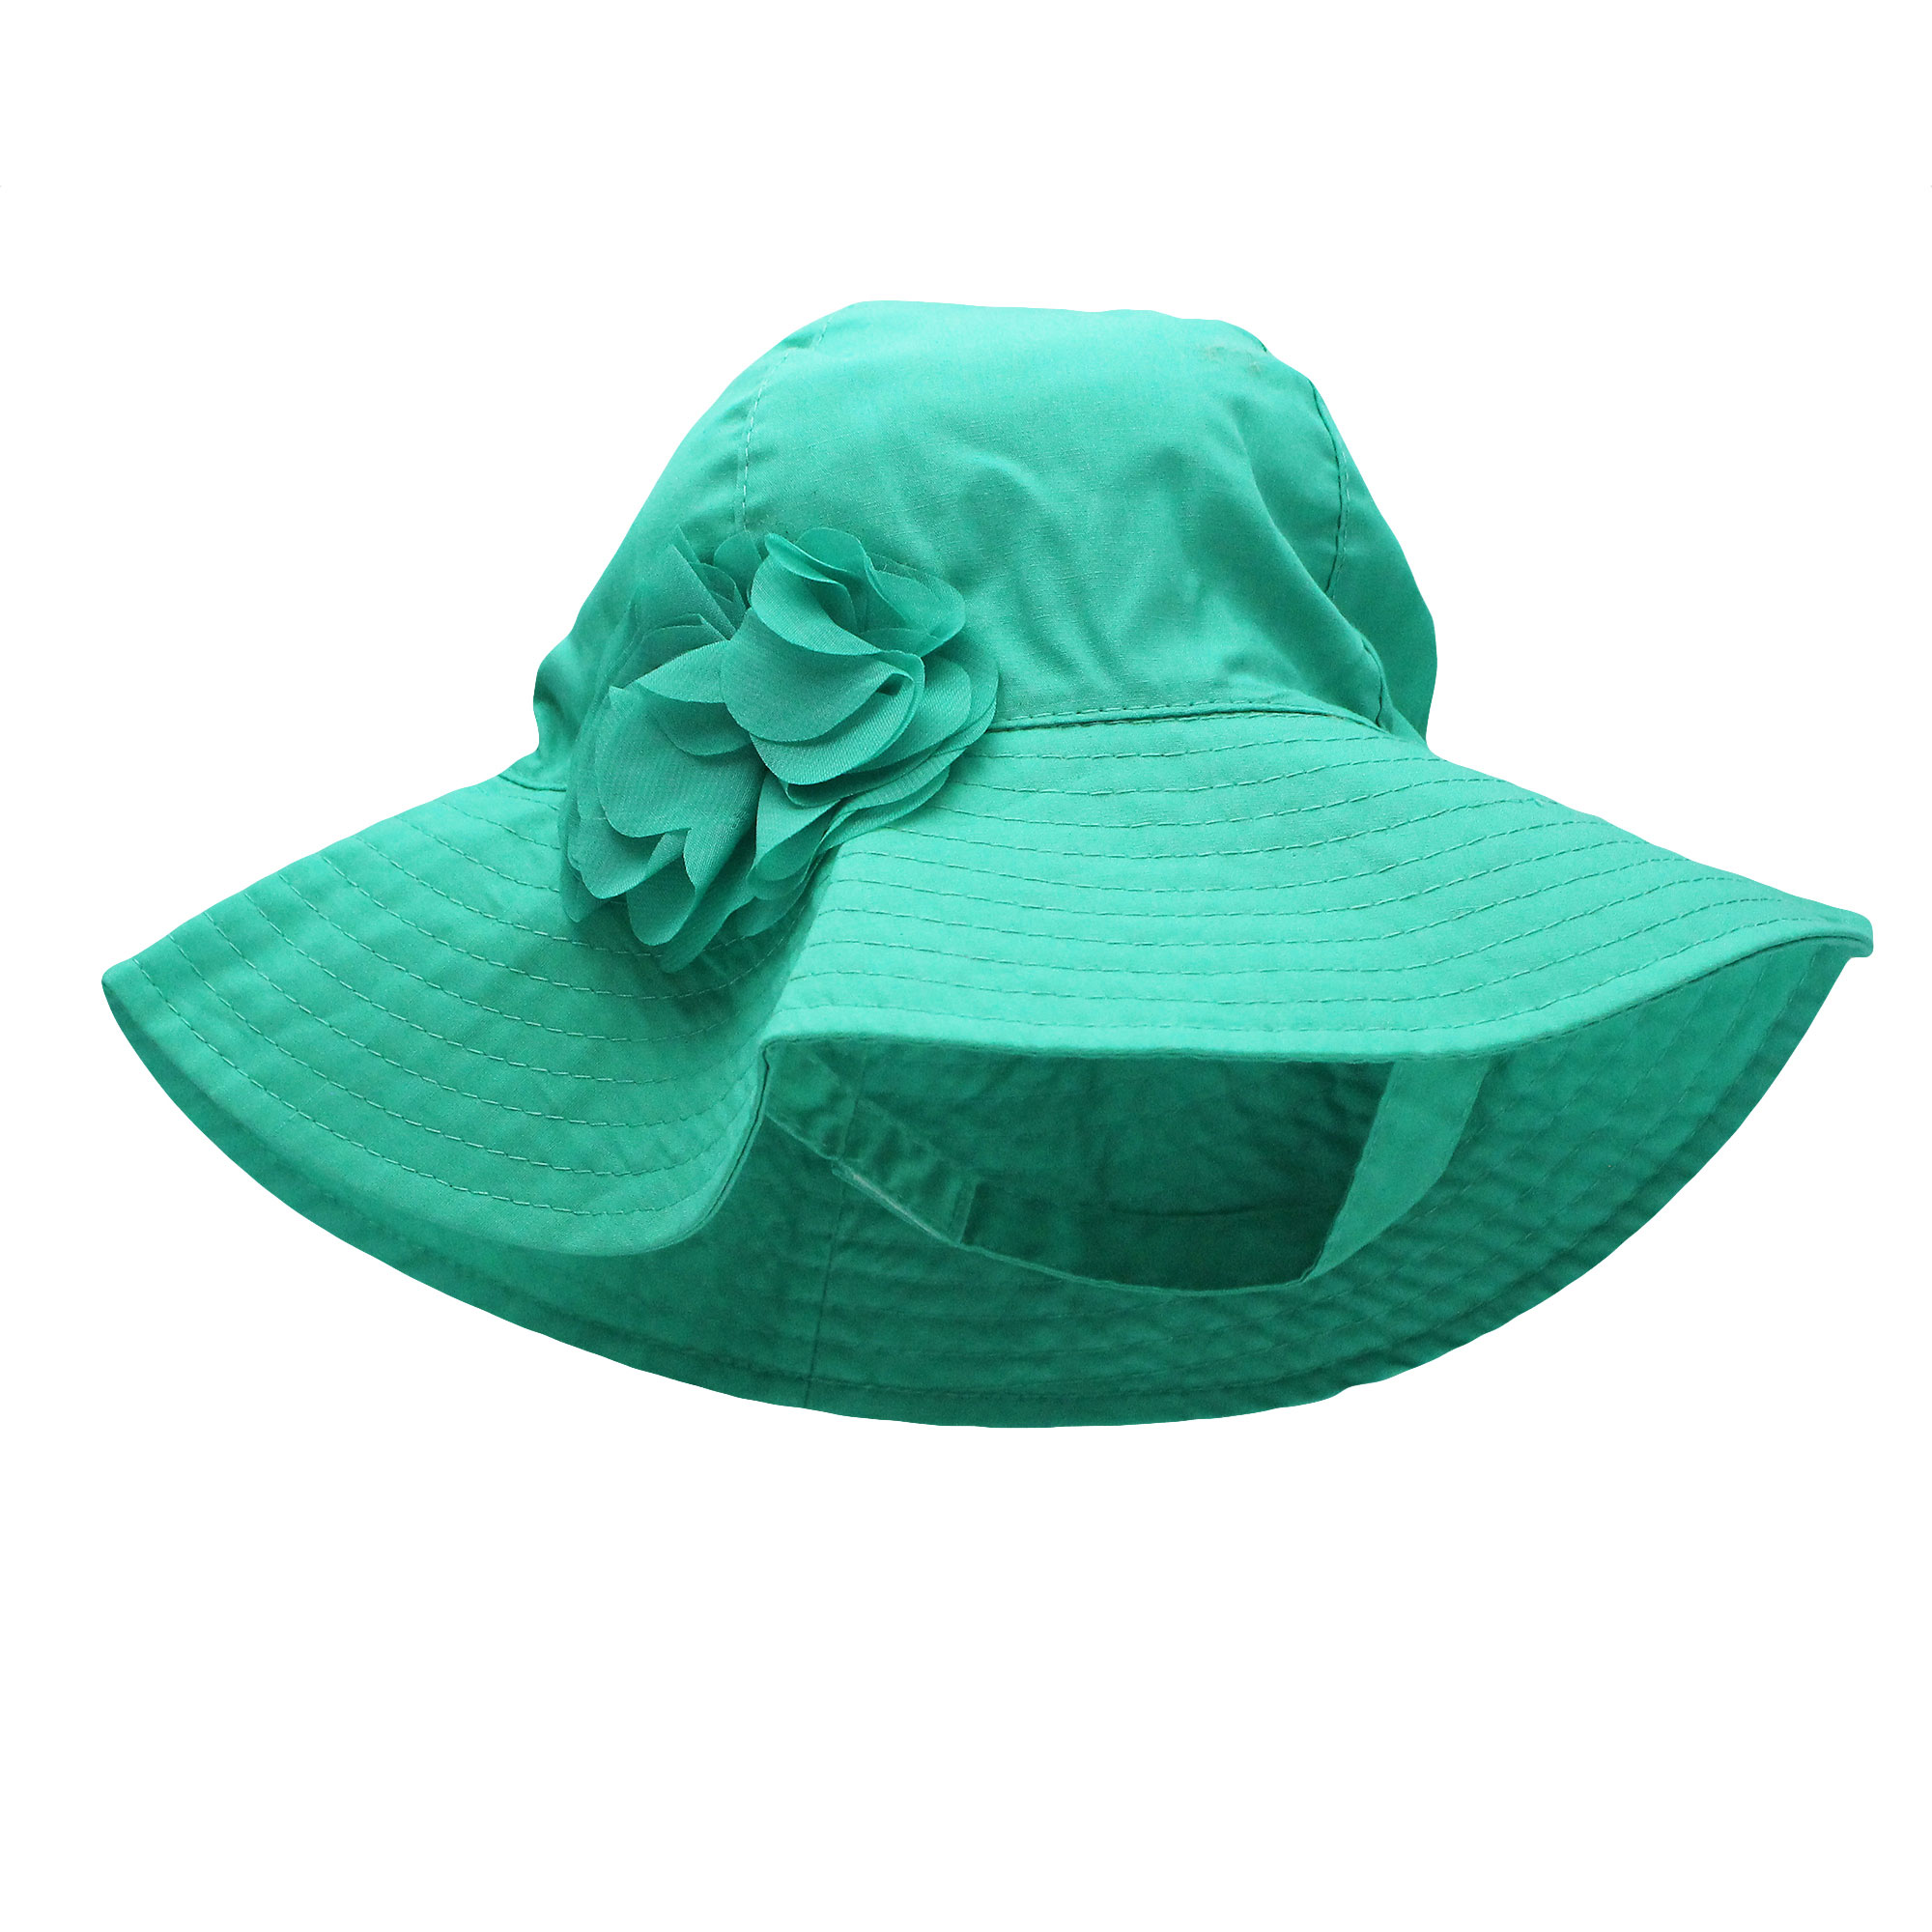 9334537e080 Carter s - Carter s Cotton Sun Hat Baby Girls Sun Protection Hat Turquoise  Blue 0-3 Months - Walmart.com